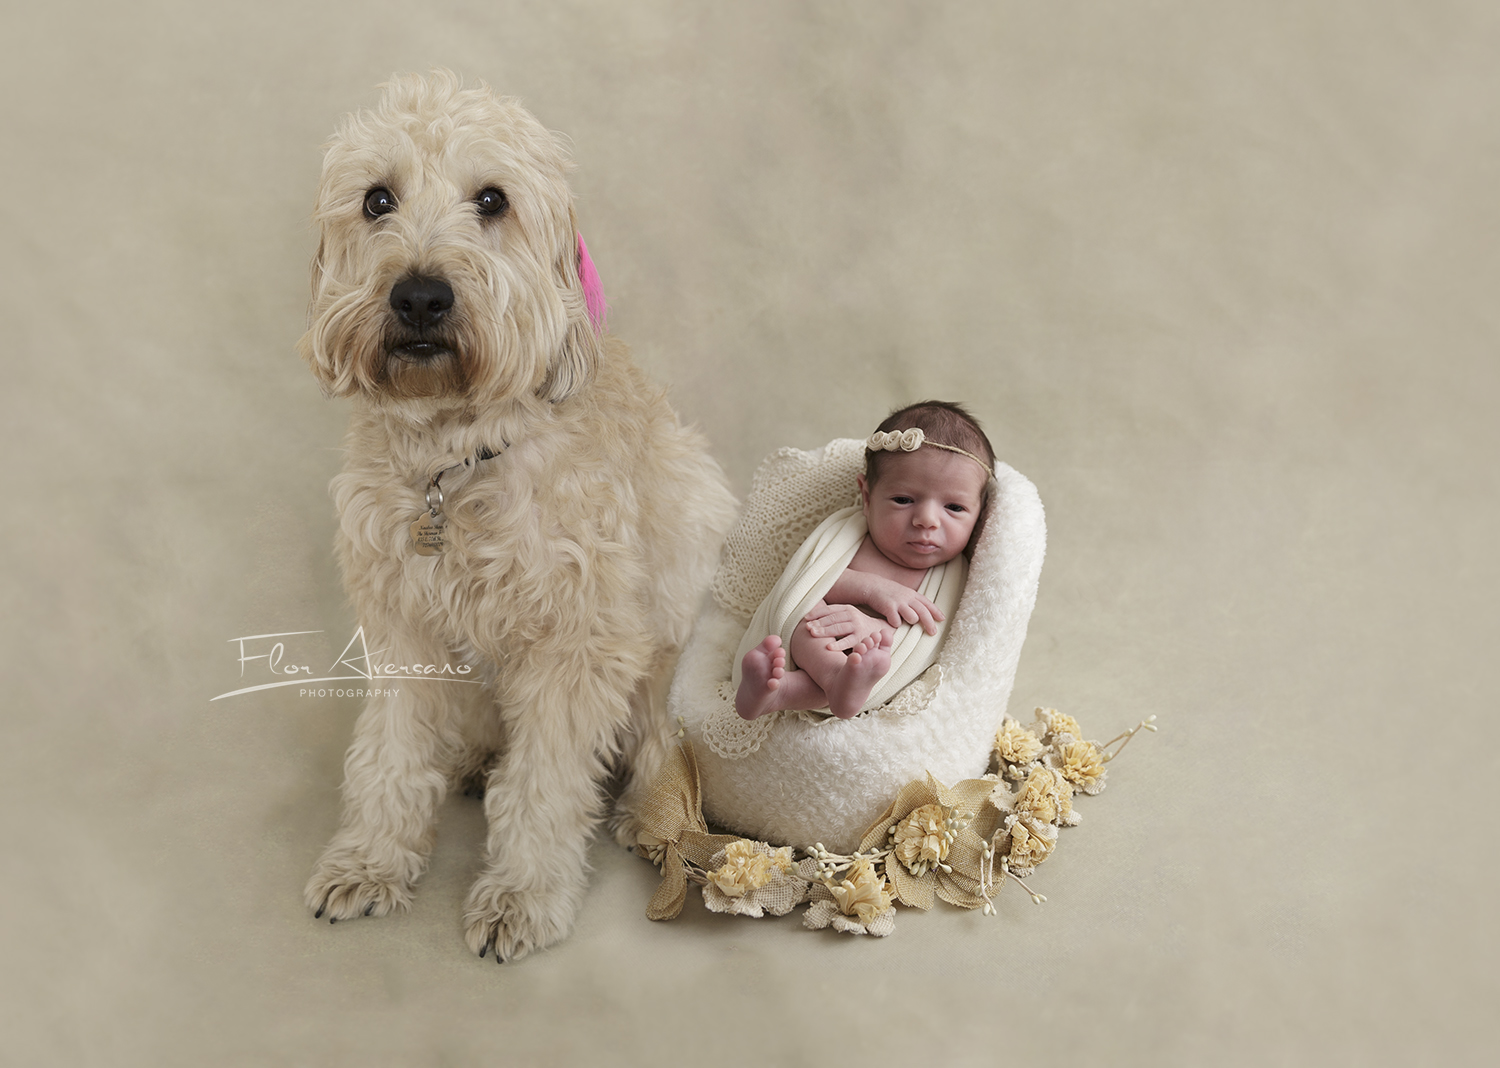 Newborn + doggy